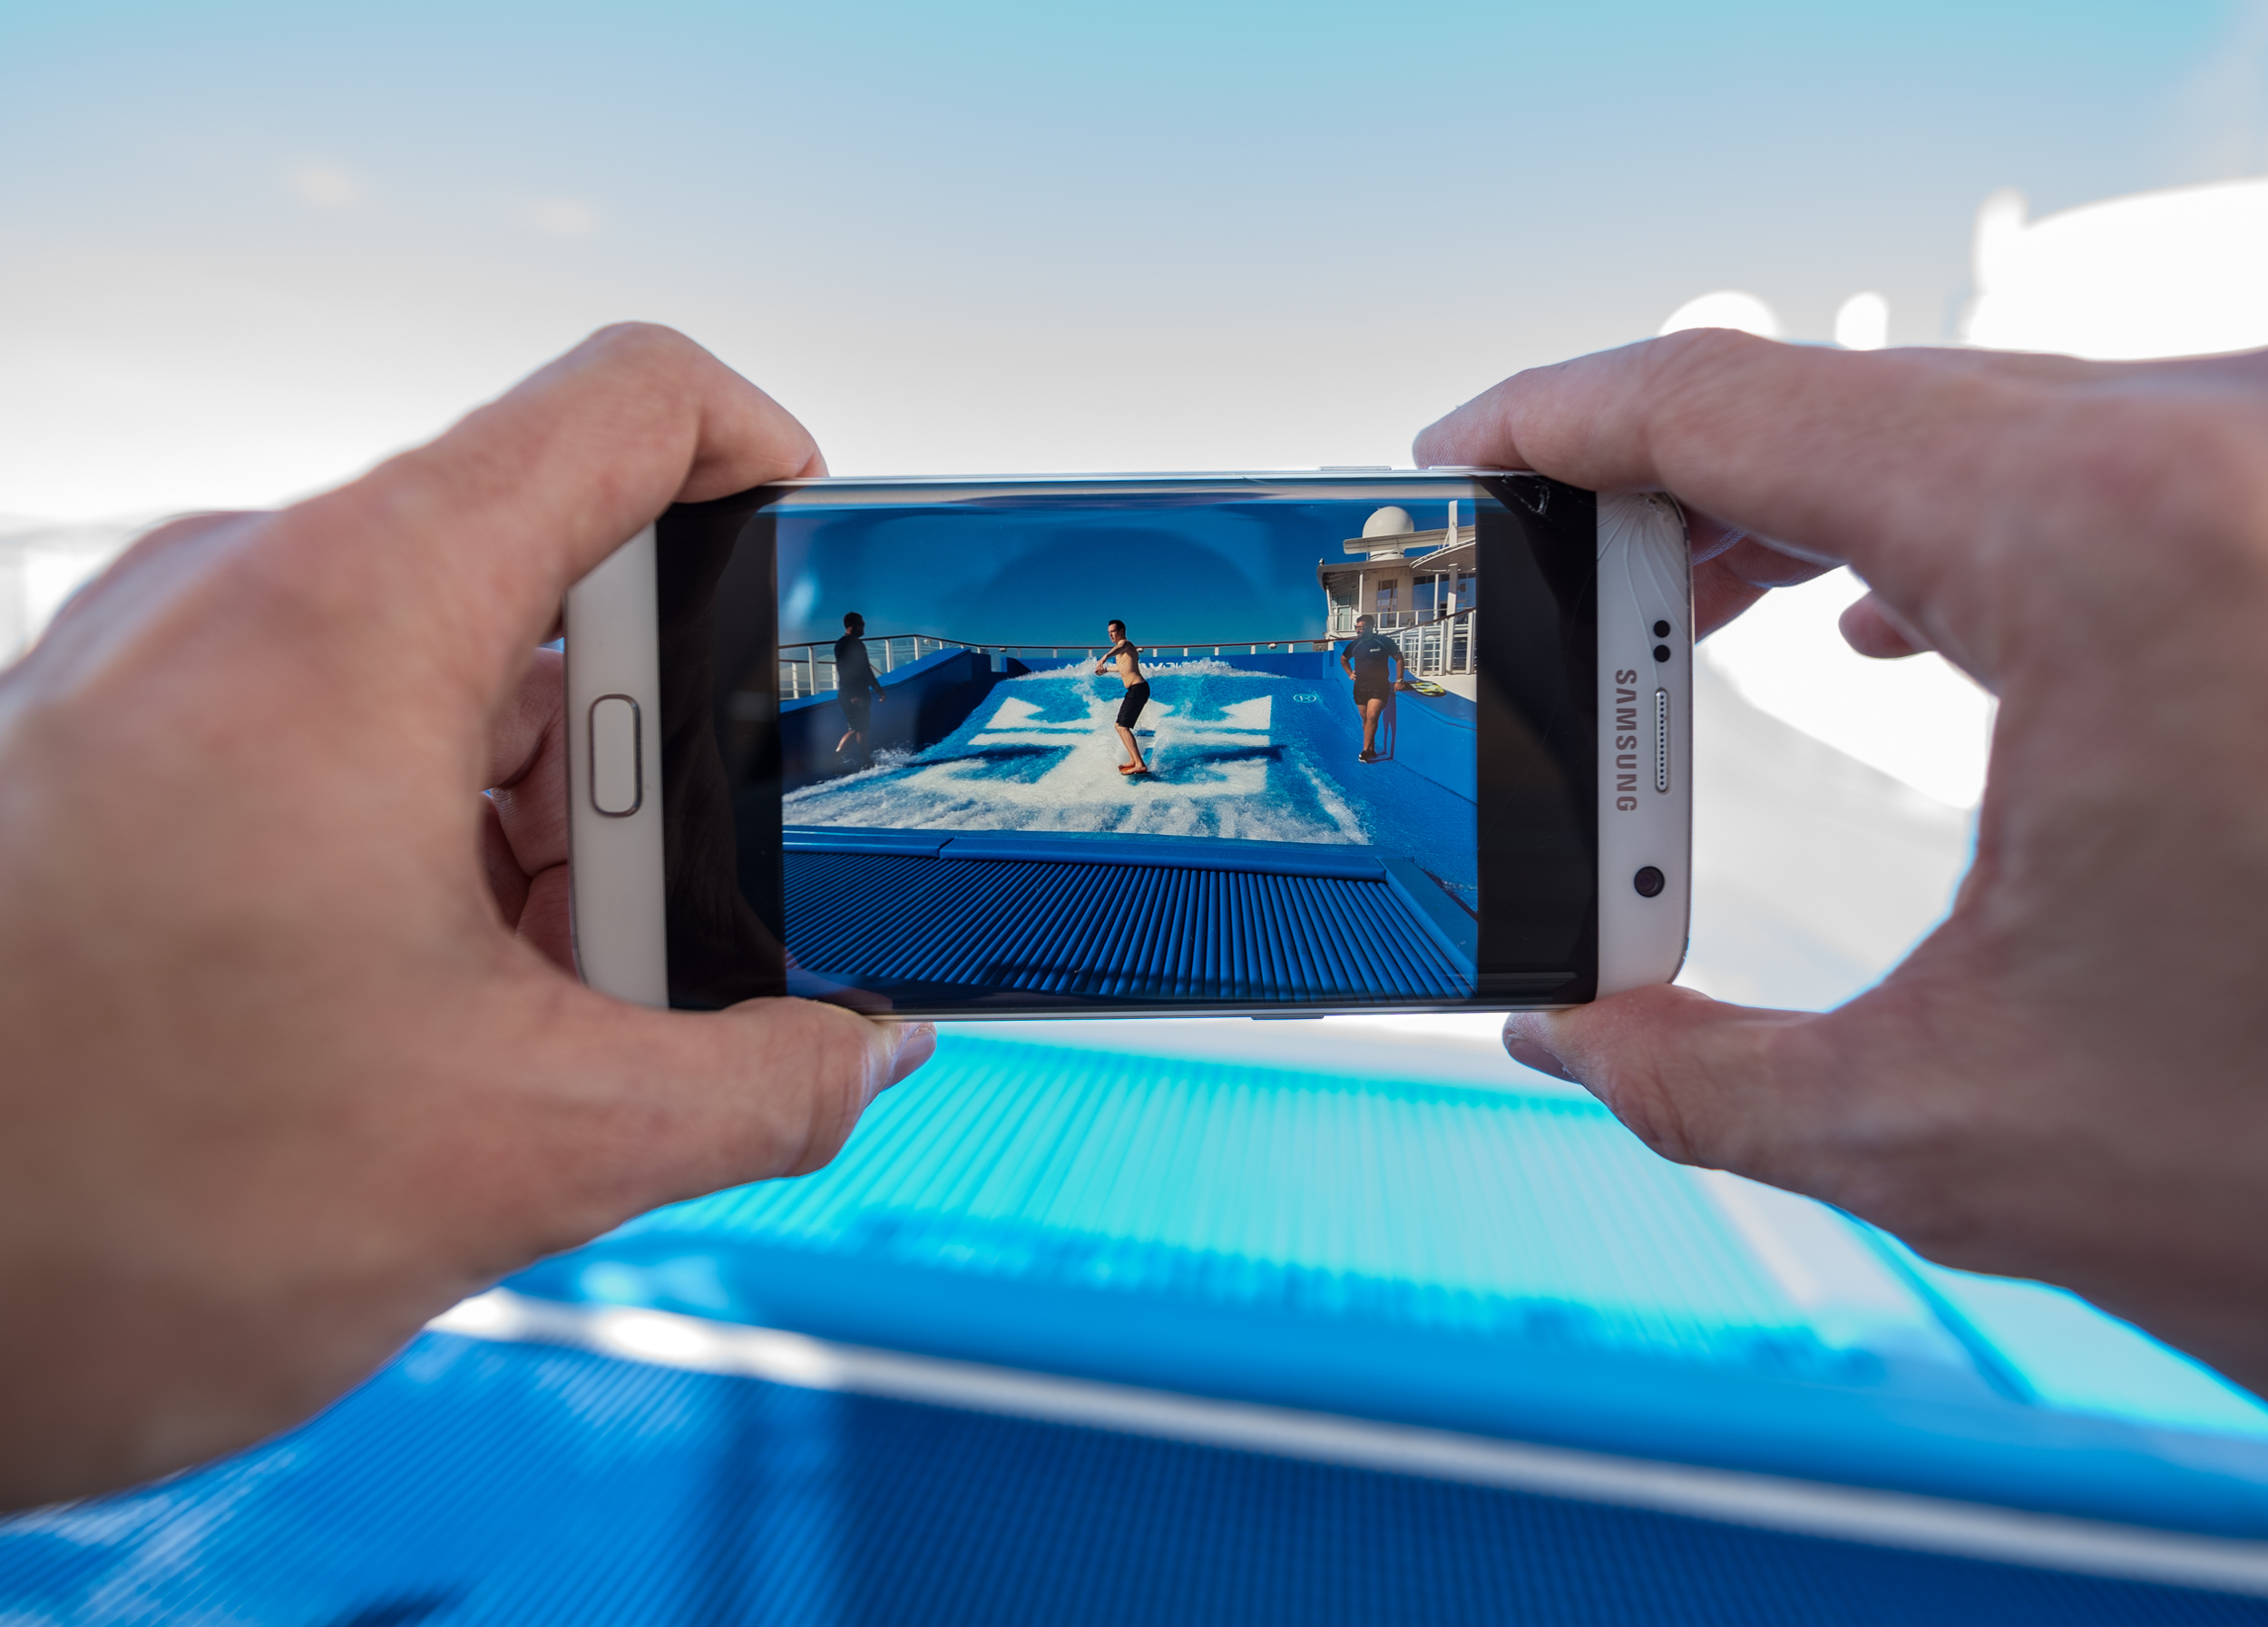 The FlowRider on the cruise ship being photographed.